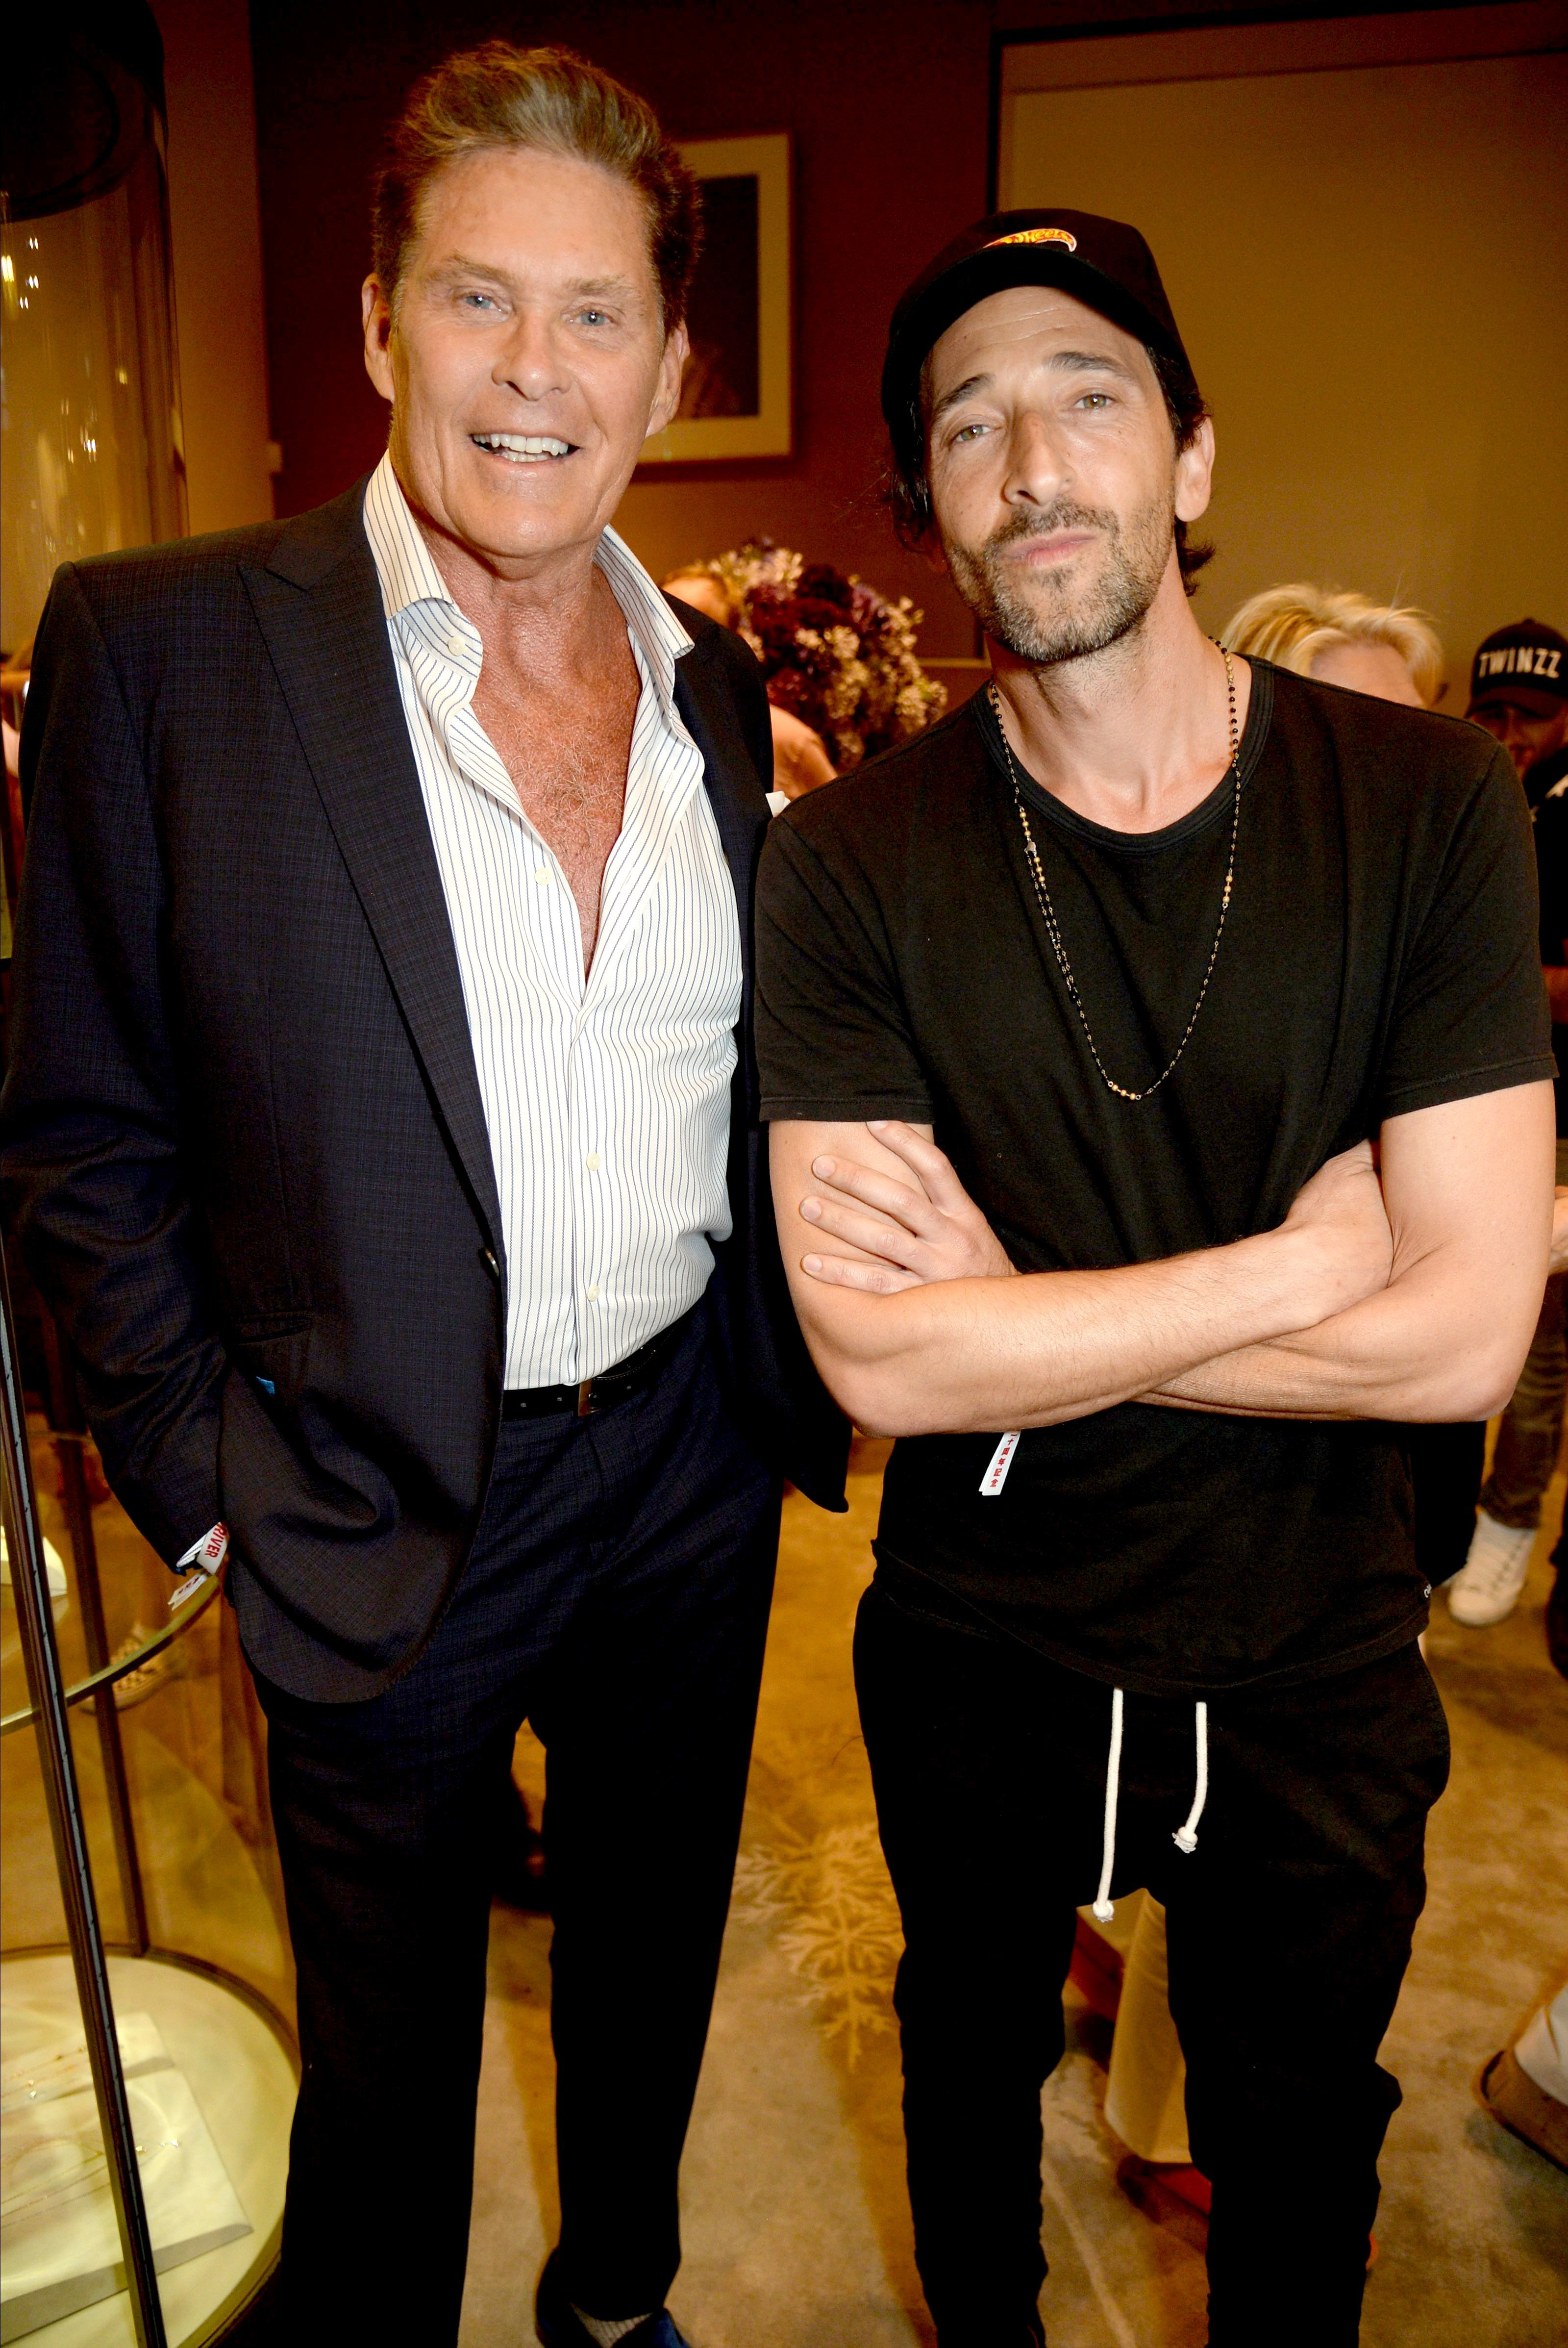 David Hasselhoff and Adrien Brody attend the Gumball 3000 x Asprey 2018 opening party in London on Aug. 4, 2018.